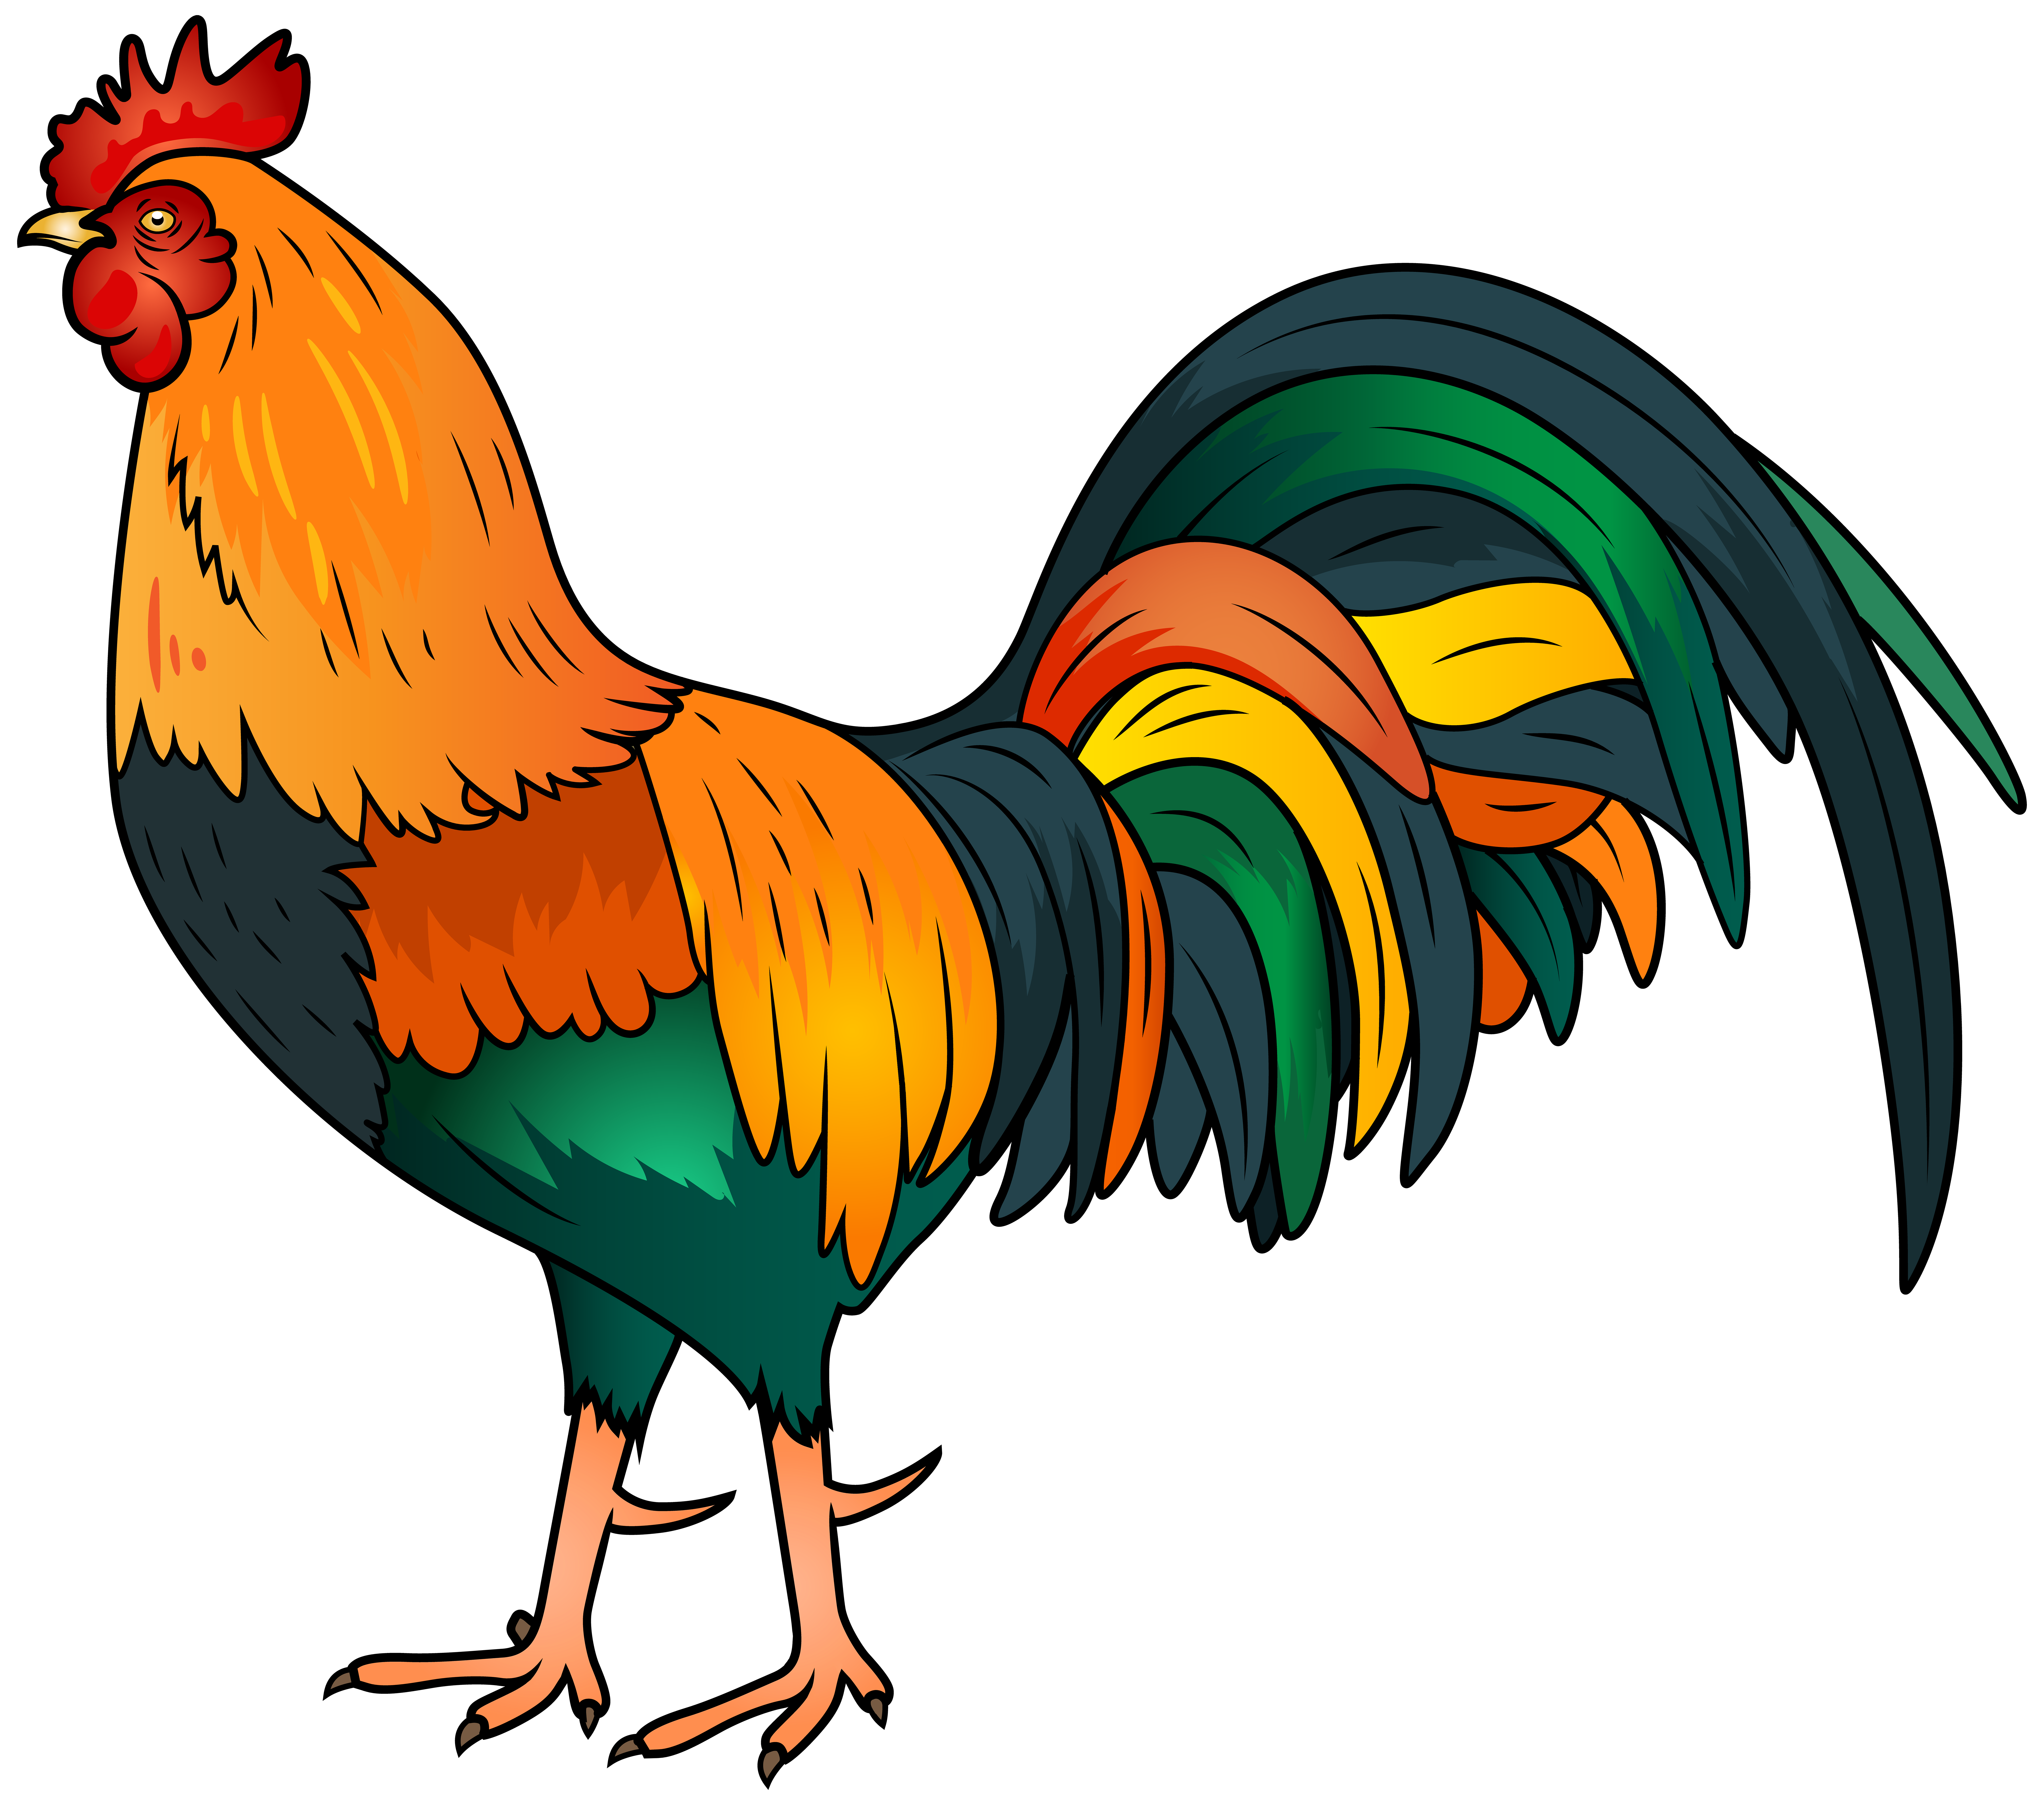 Rooster clipart. Png clip art image